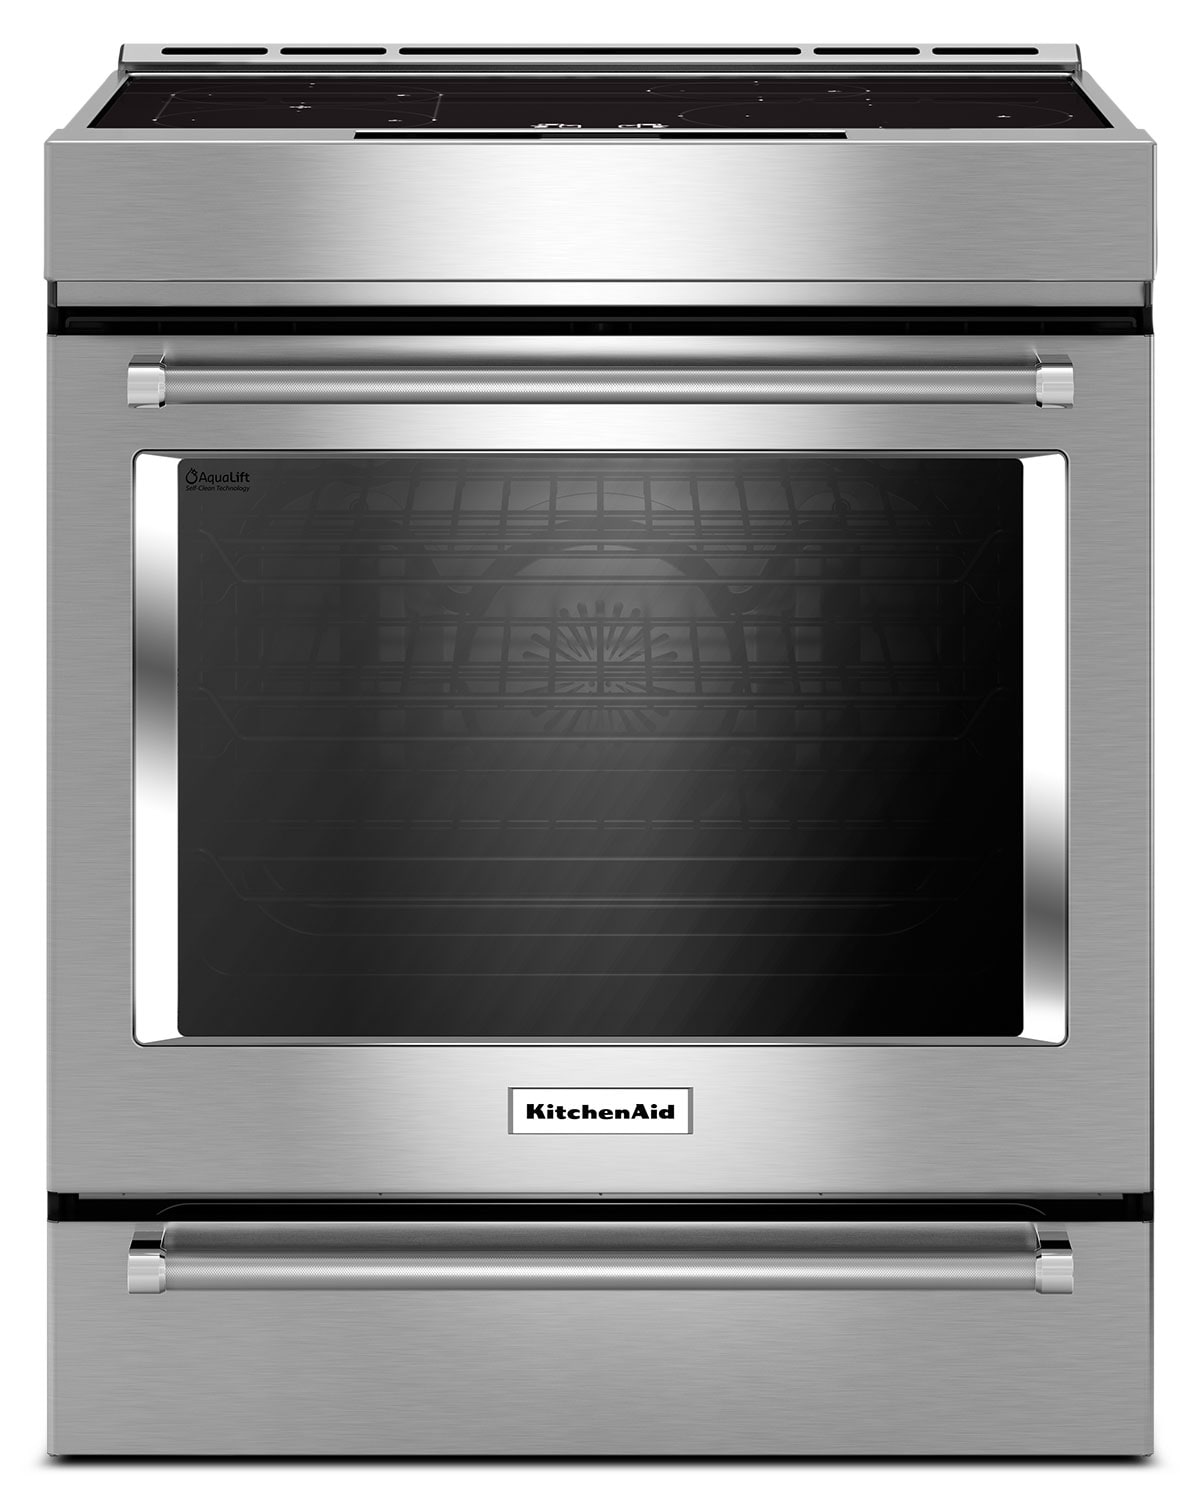 Cooking Products - KitchenAid Stainless Steel Slide-In Electric Range (7.1 Cu. Ft.) - KSIB900ESS